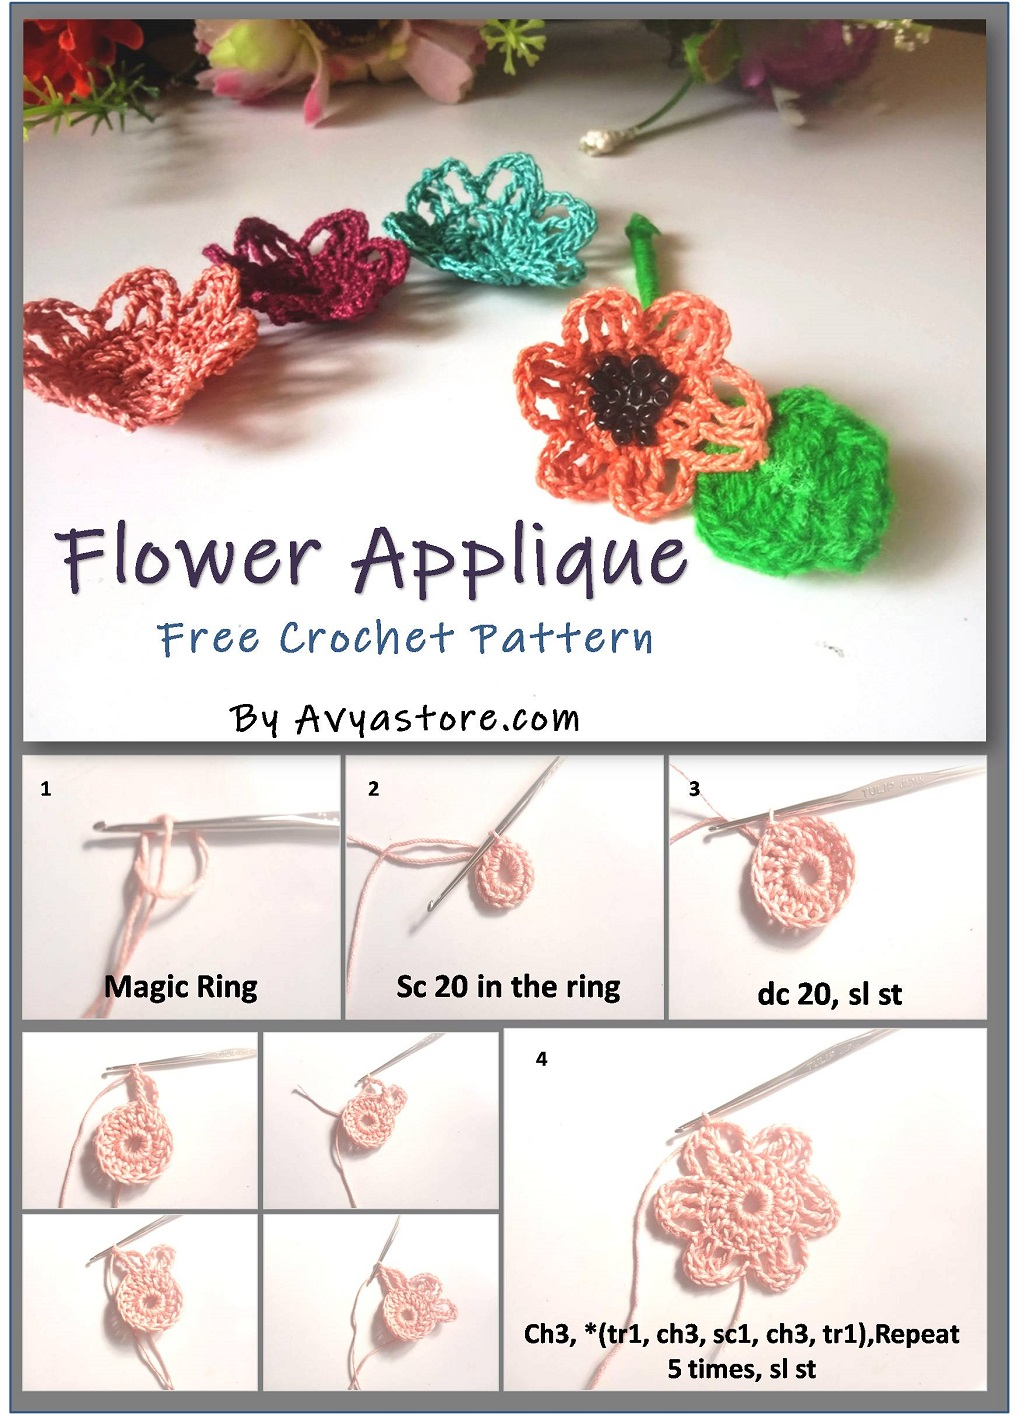 Flower Applique – Free Crochet Pattern & Instructions